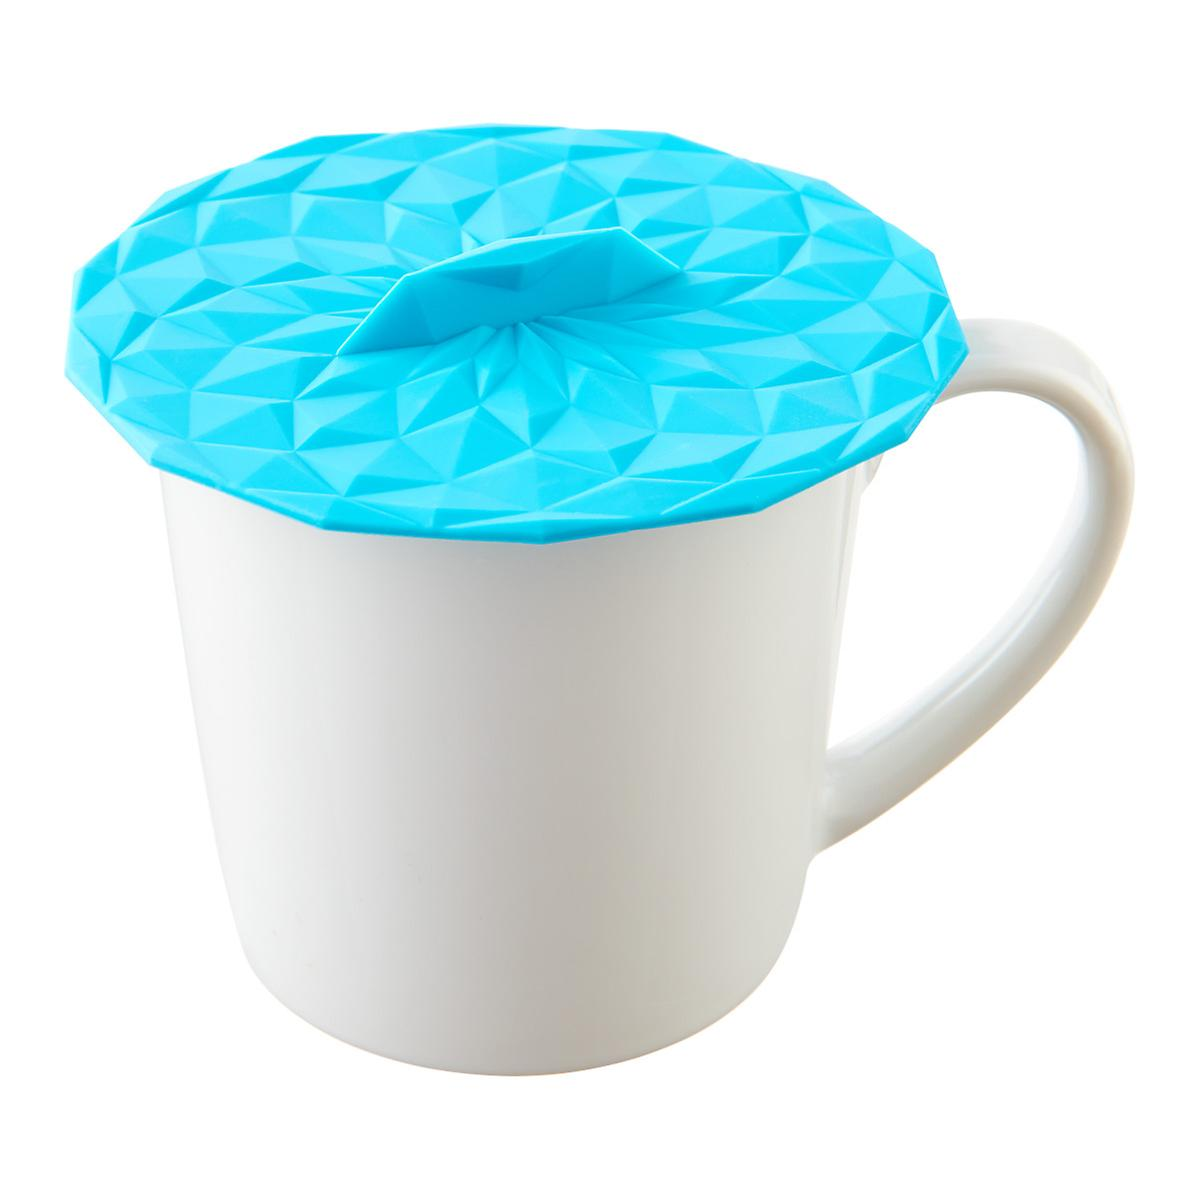 Teal Silicone Drink Covers   The Container Store